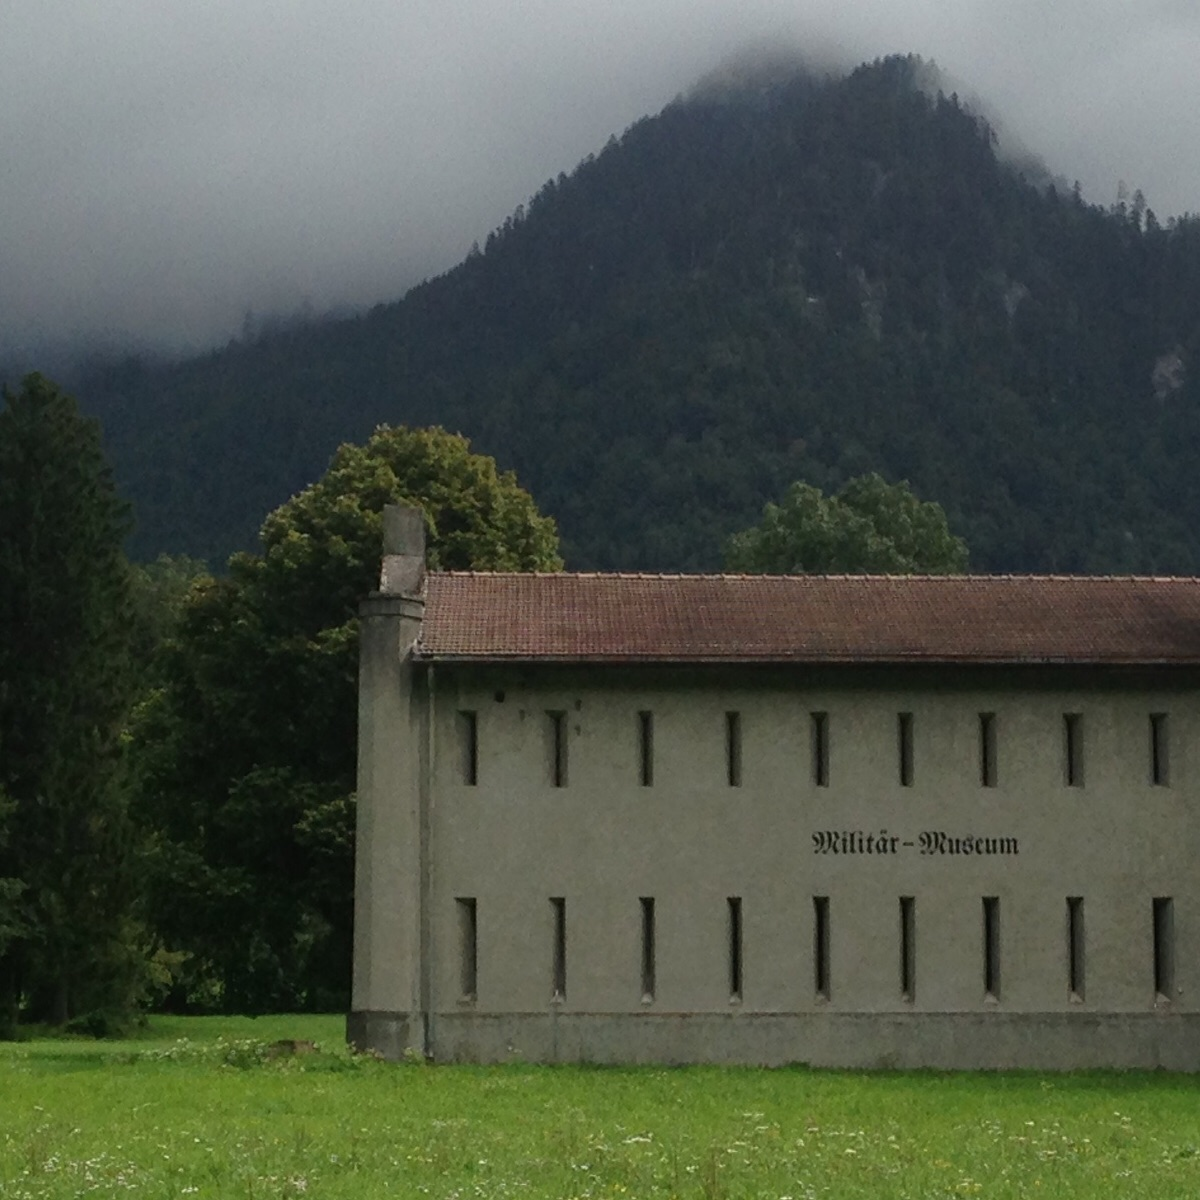 An old military building. Switzerland.